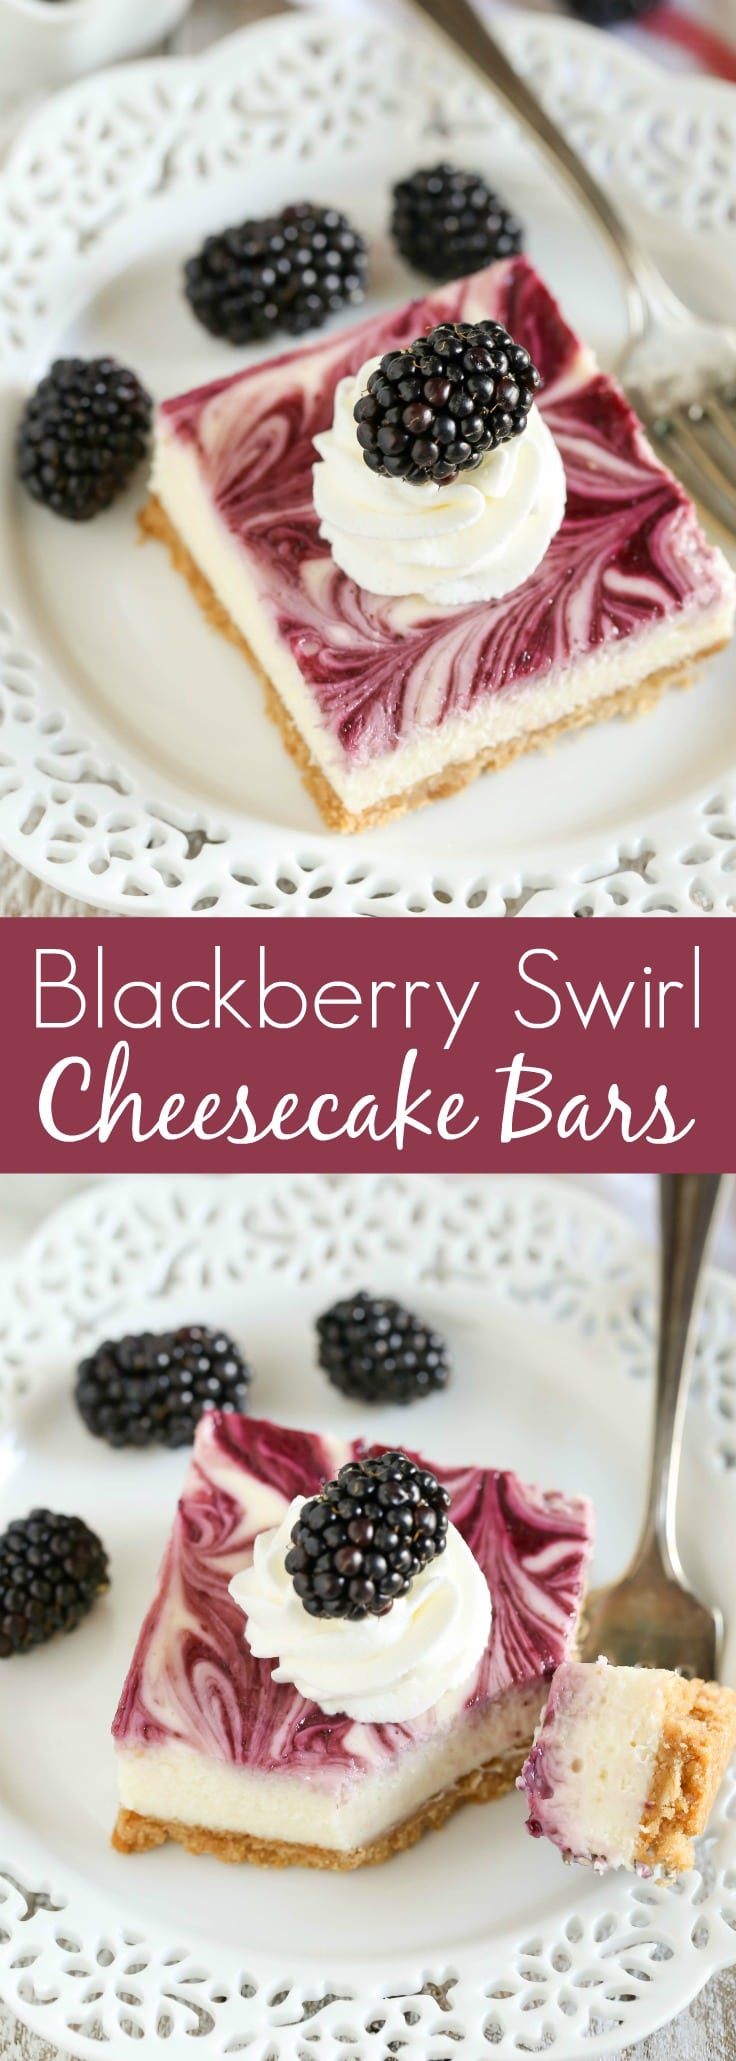 A homemade graham cracker crust topped with a smooth and creamy cheesecake filling and blackberry swirl. These Blackberry Swirl Cheesecake Bars make a gorgeous and delicious dessert!